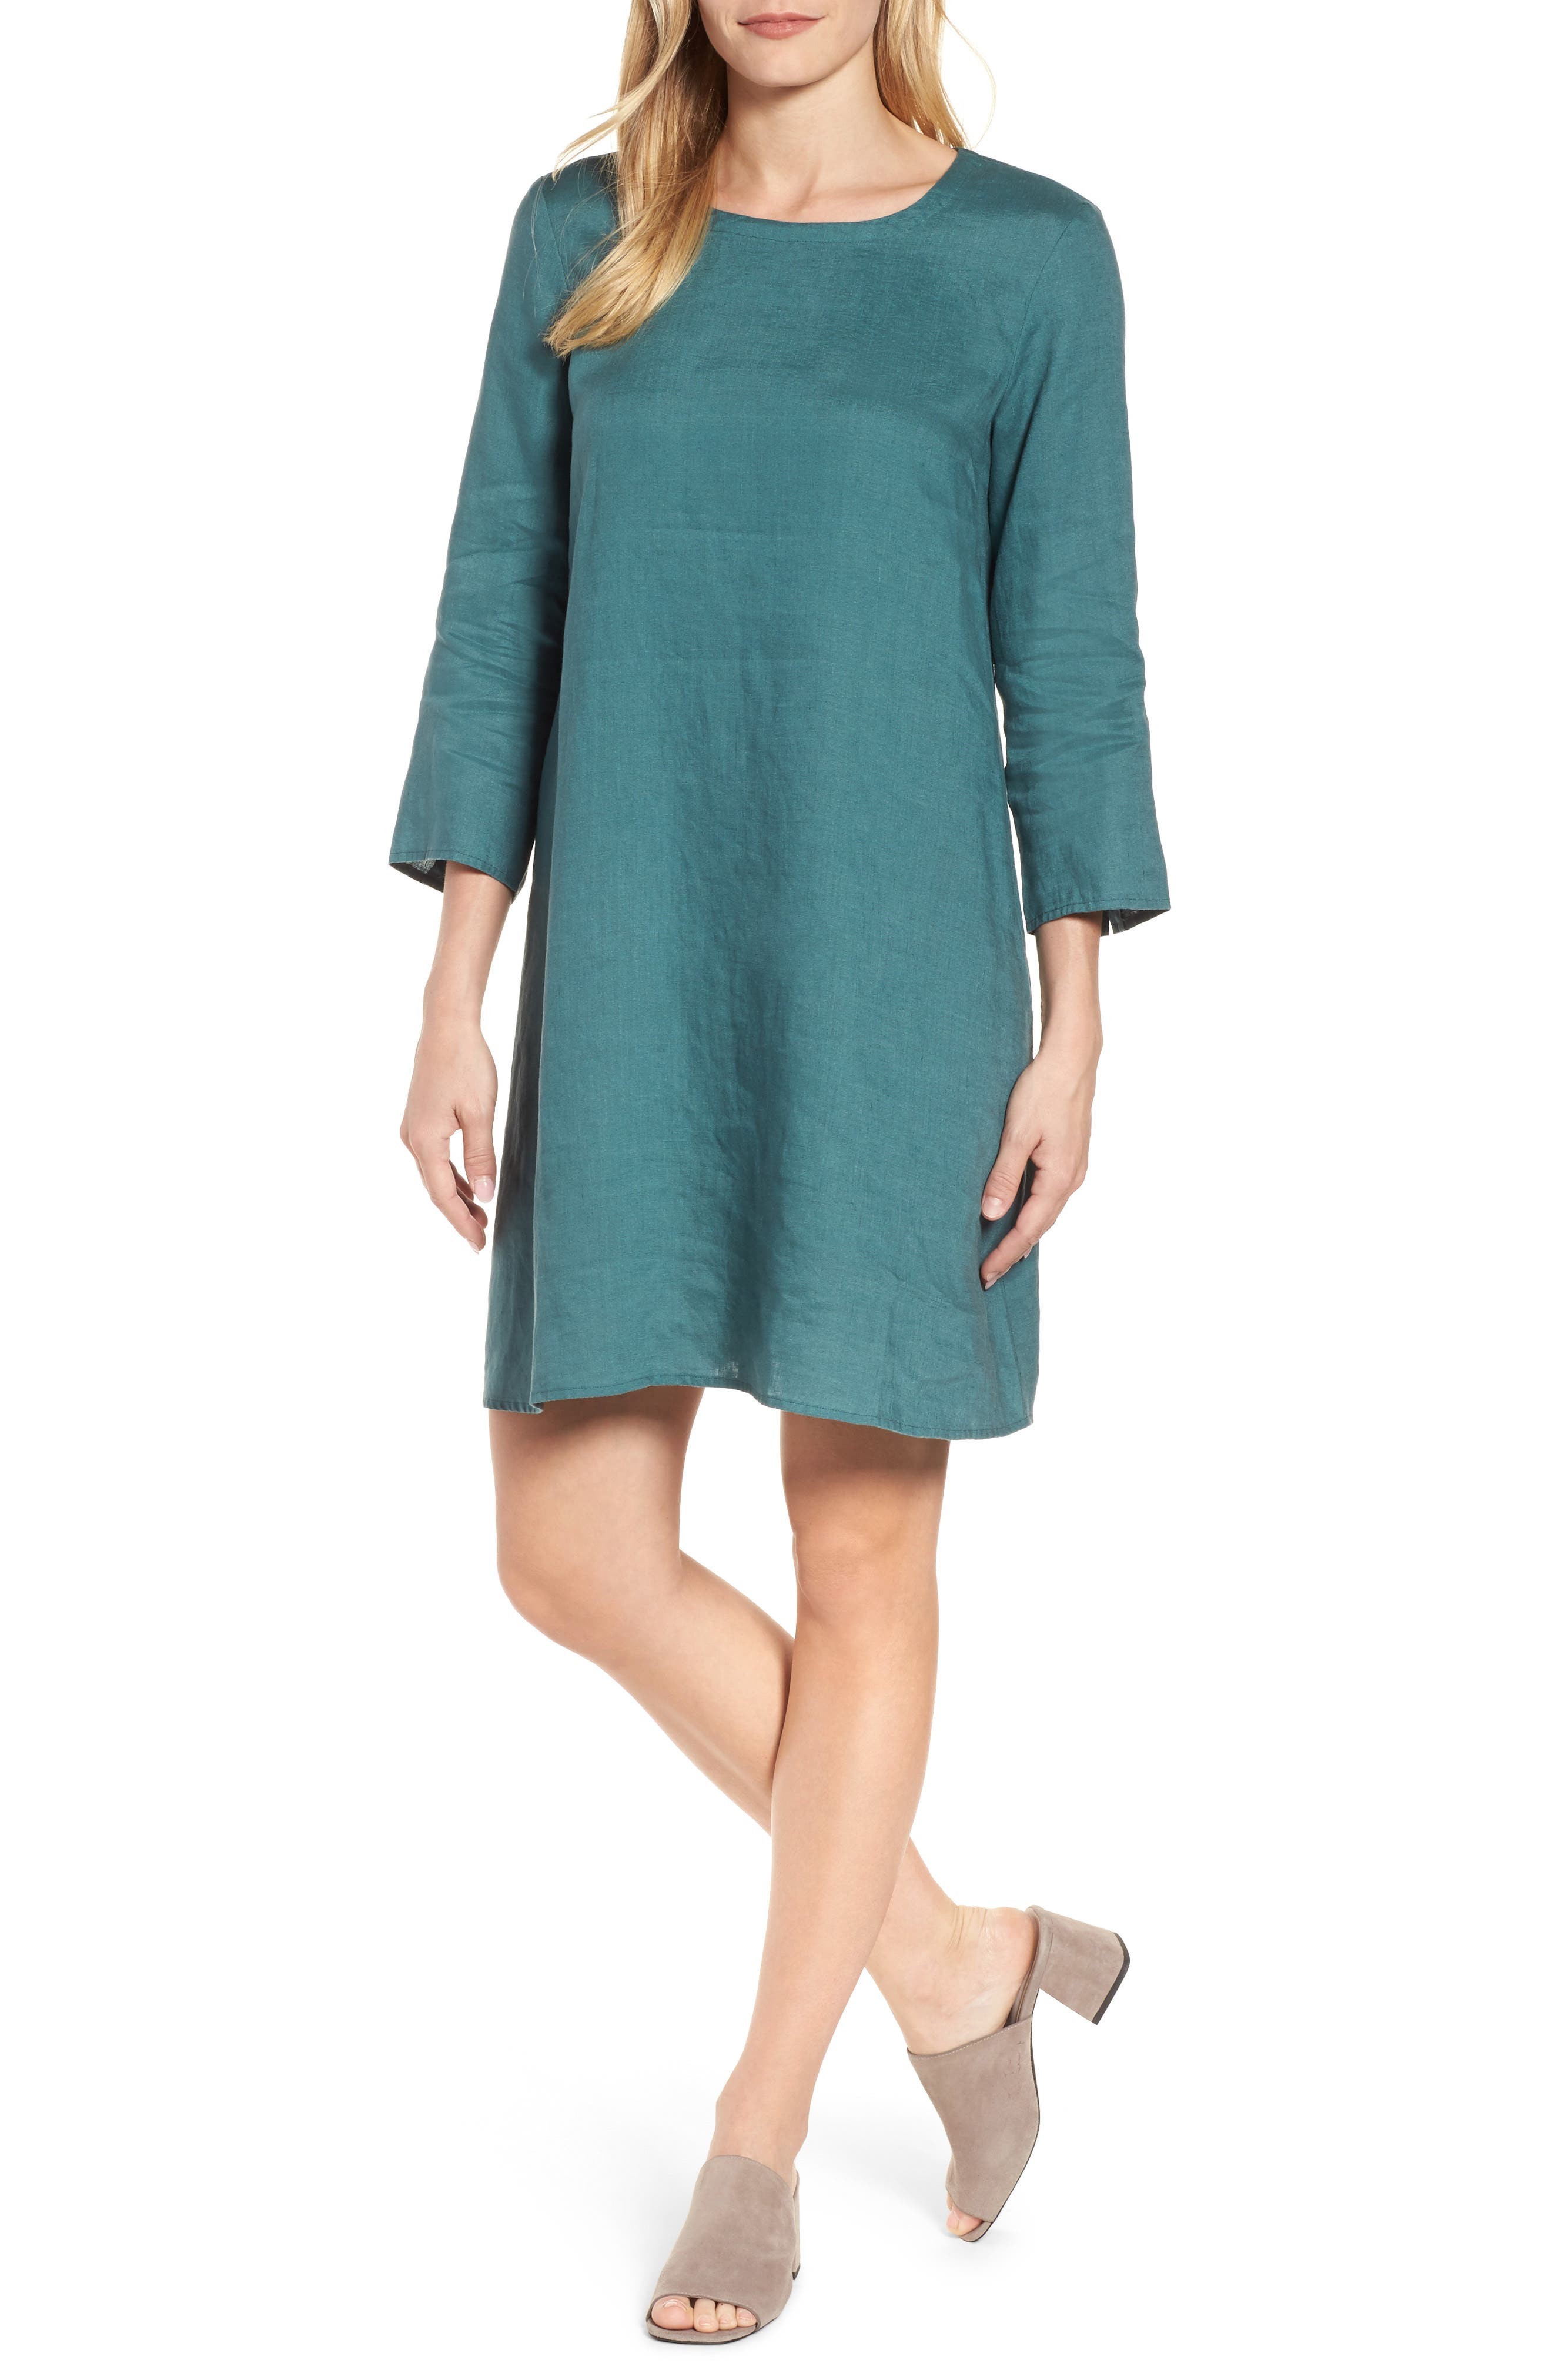 Alternate Image 1 Selected - Eileen Fisher Organic Linen Round Neck Shift Dress